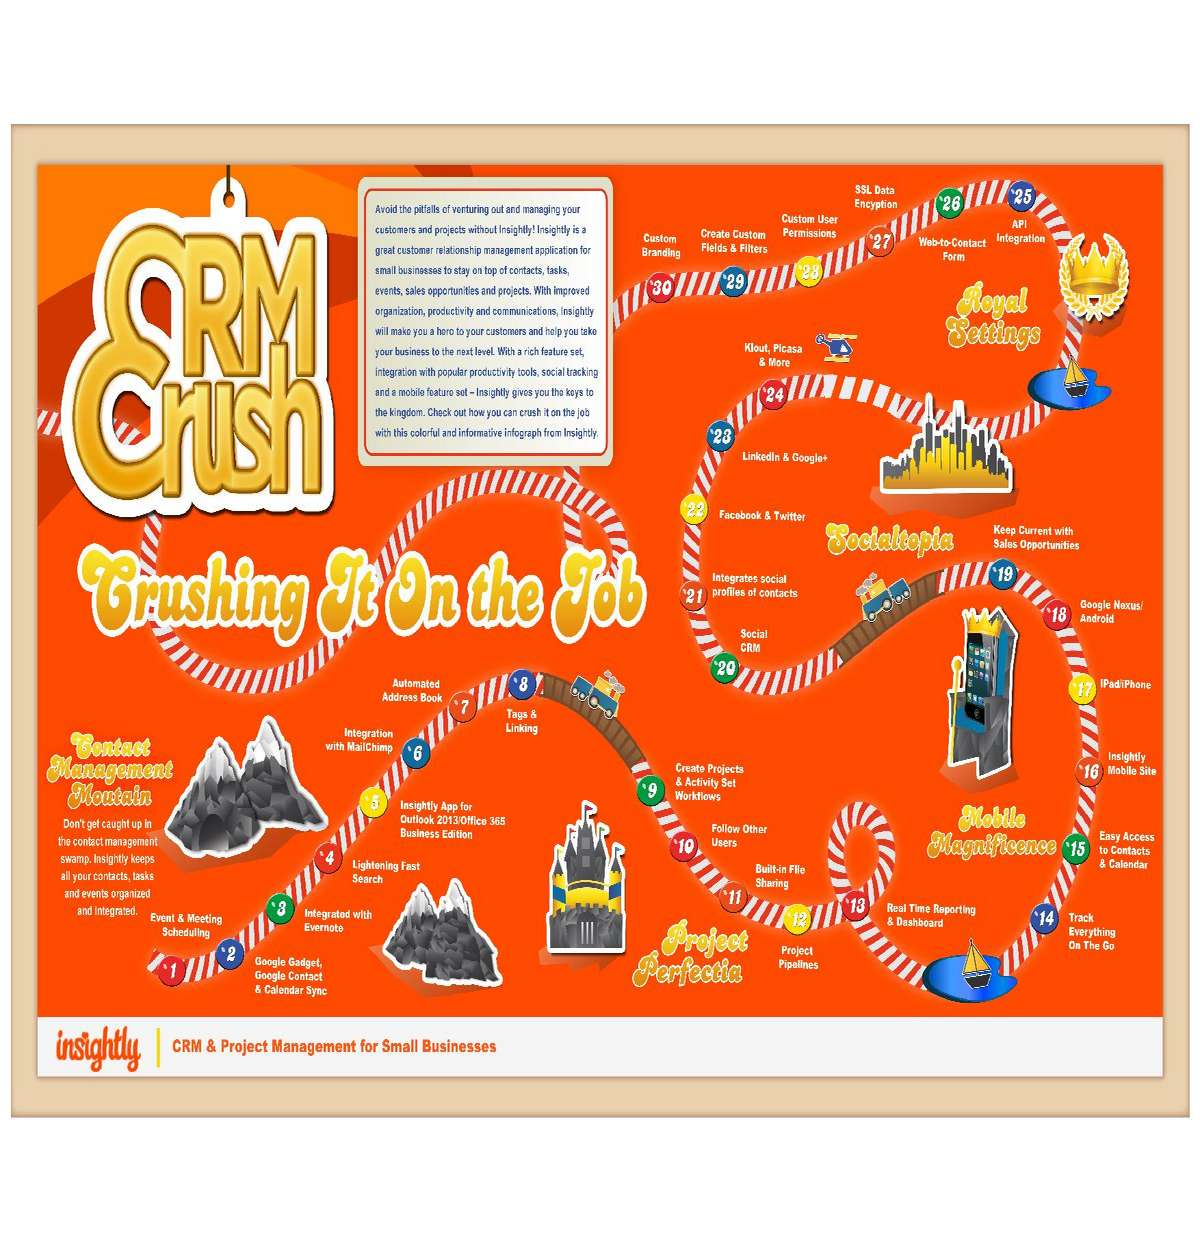 You've Heard of Candy Crush, Now Check out CRM Crush!